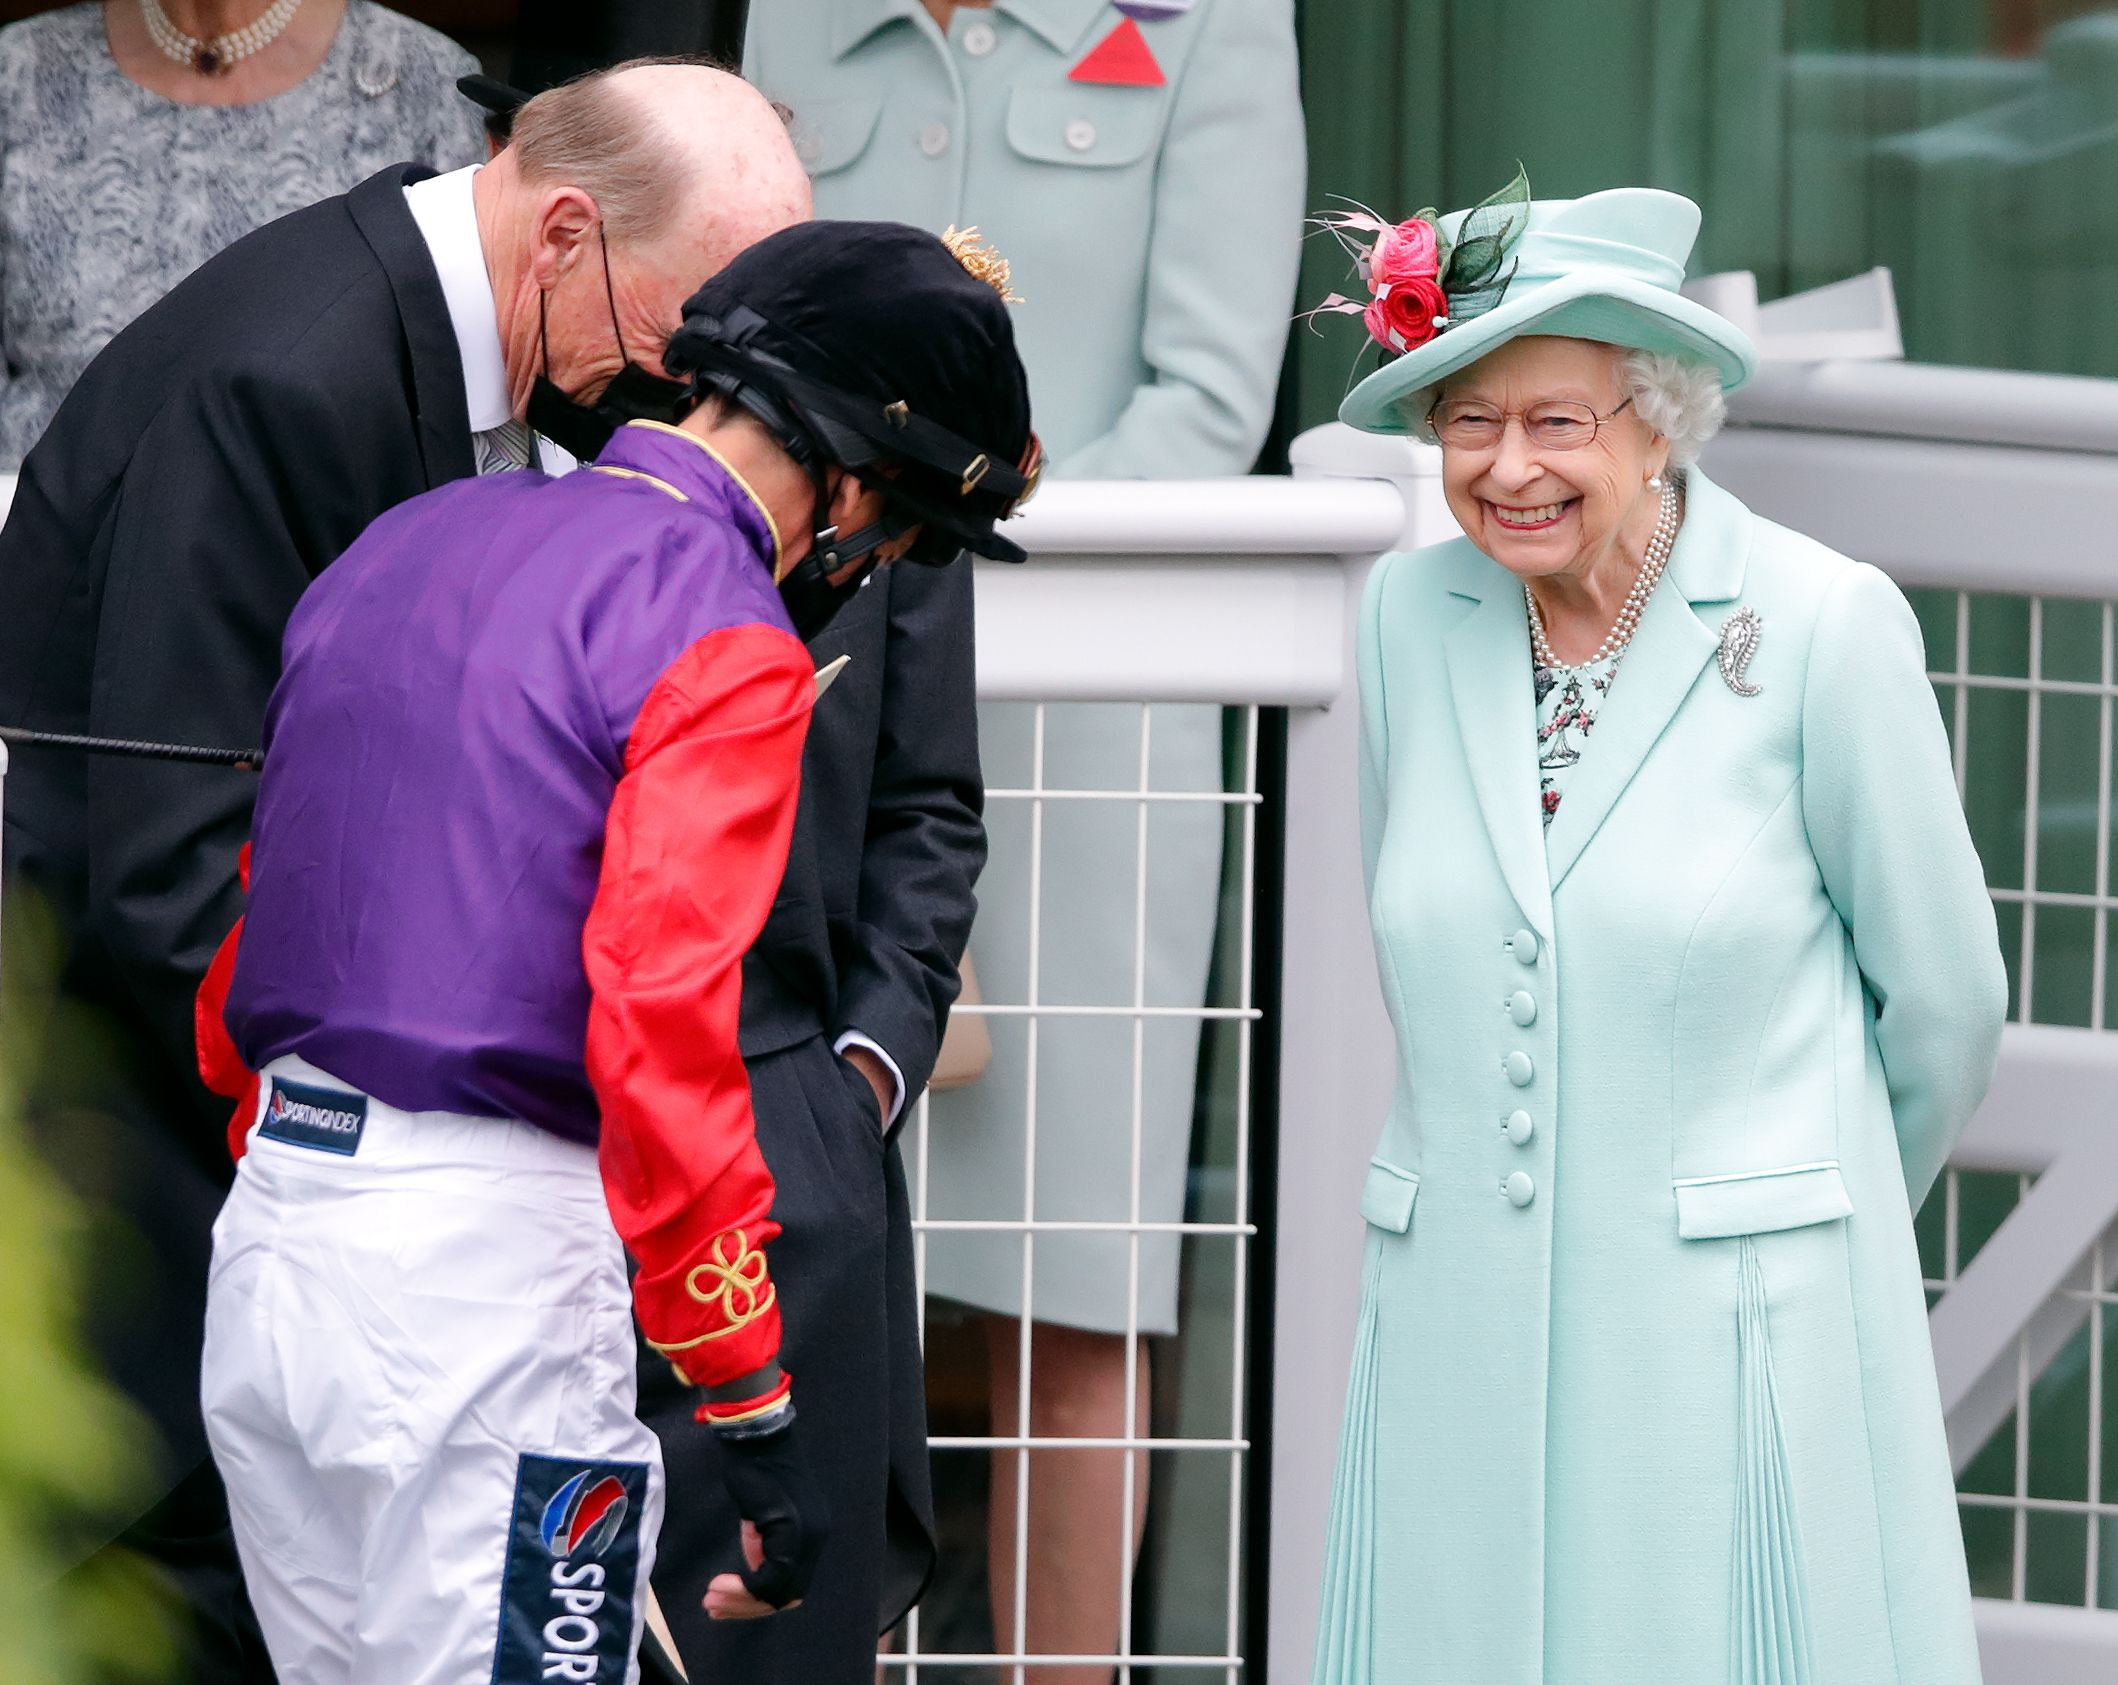 All the Pictures of the Royal Family at the 2021 Royal Ascot